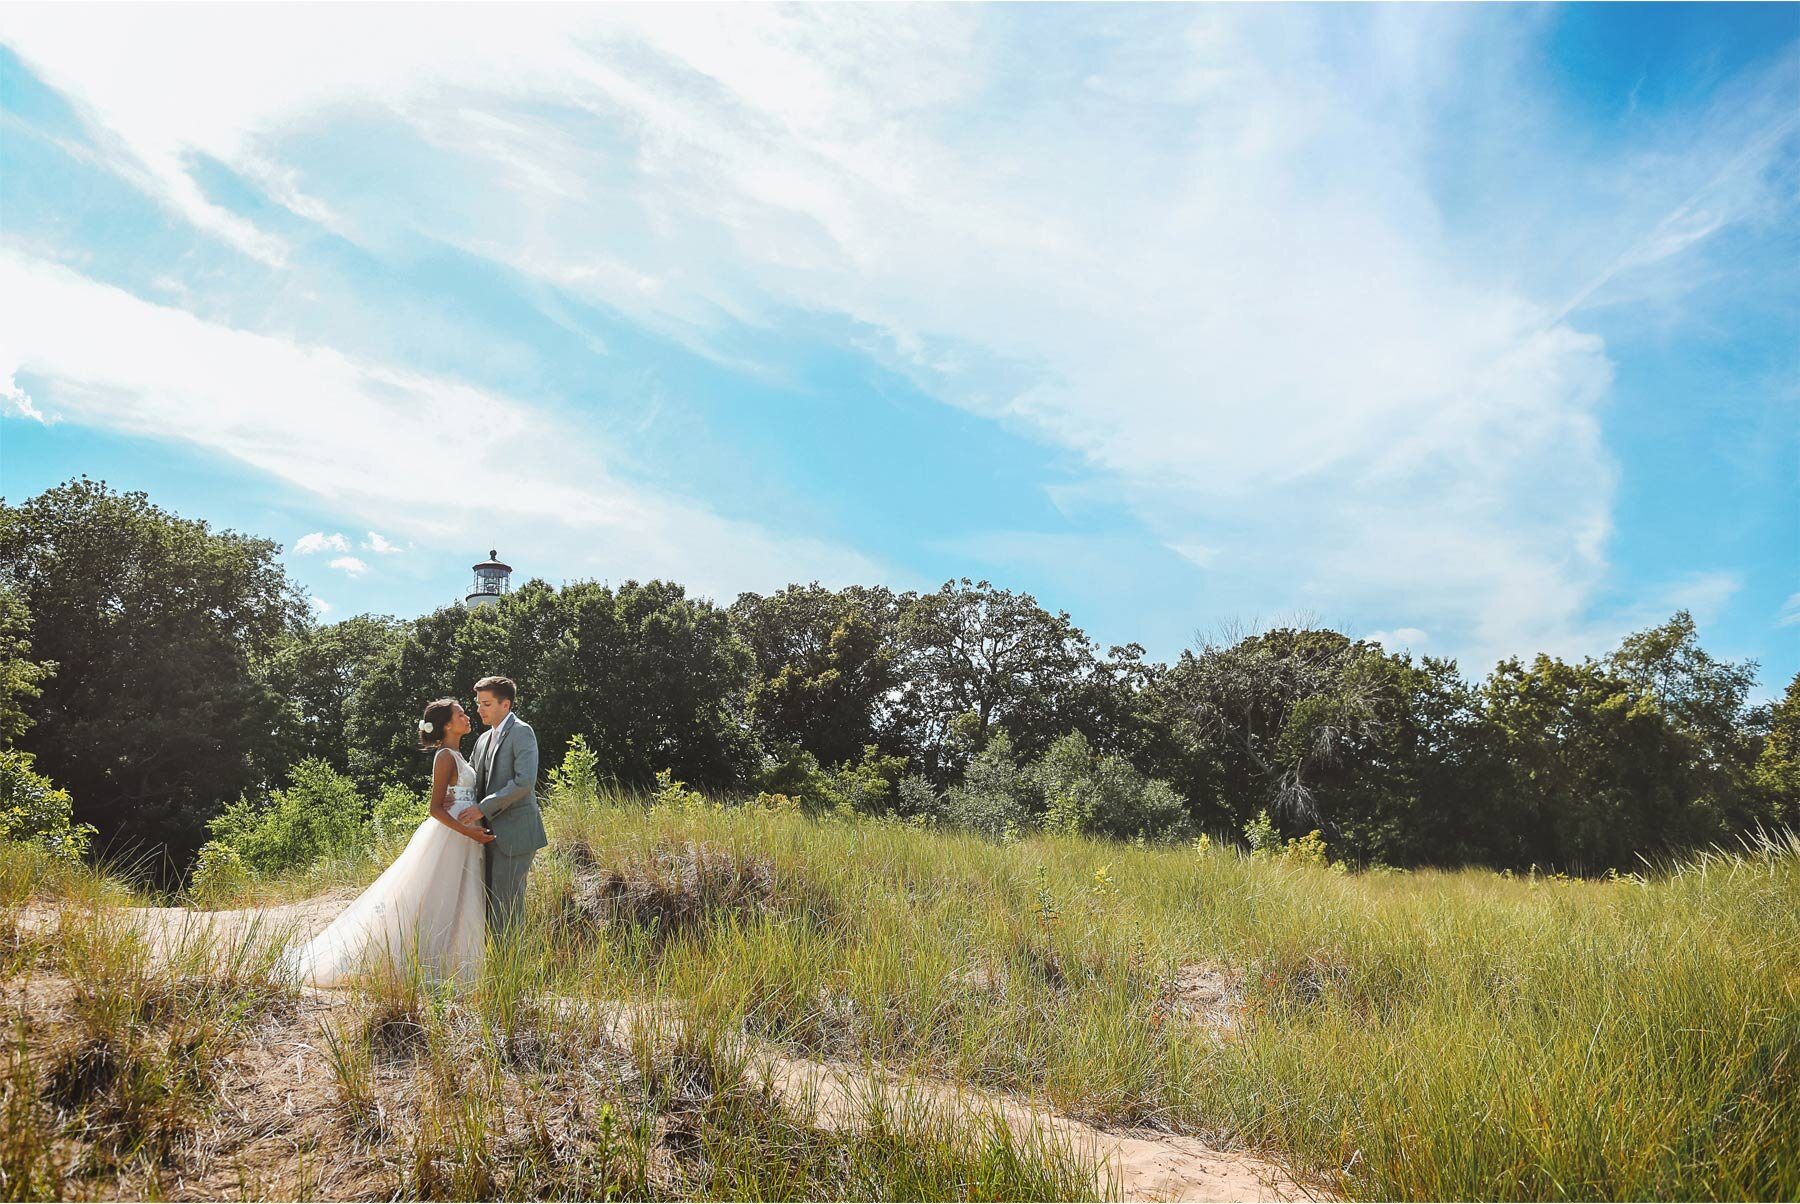 09-Wedding-by-Andrew-Vick-Photography-Chicago-Illinois-Groom-Bride-Lighthouse-Beach-Ashley-and-Nicholas.jpg